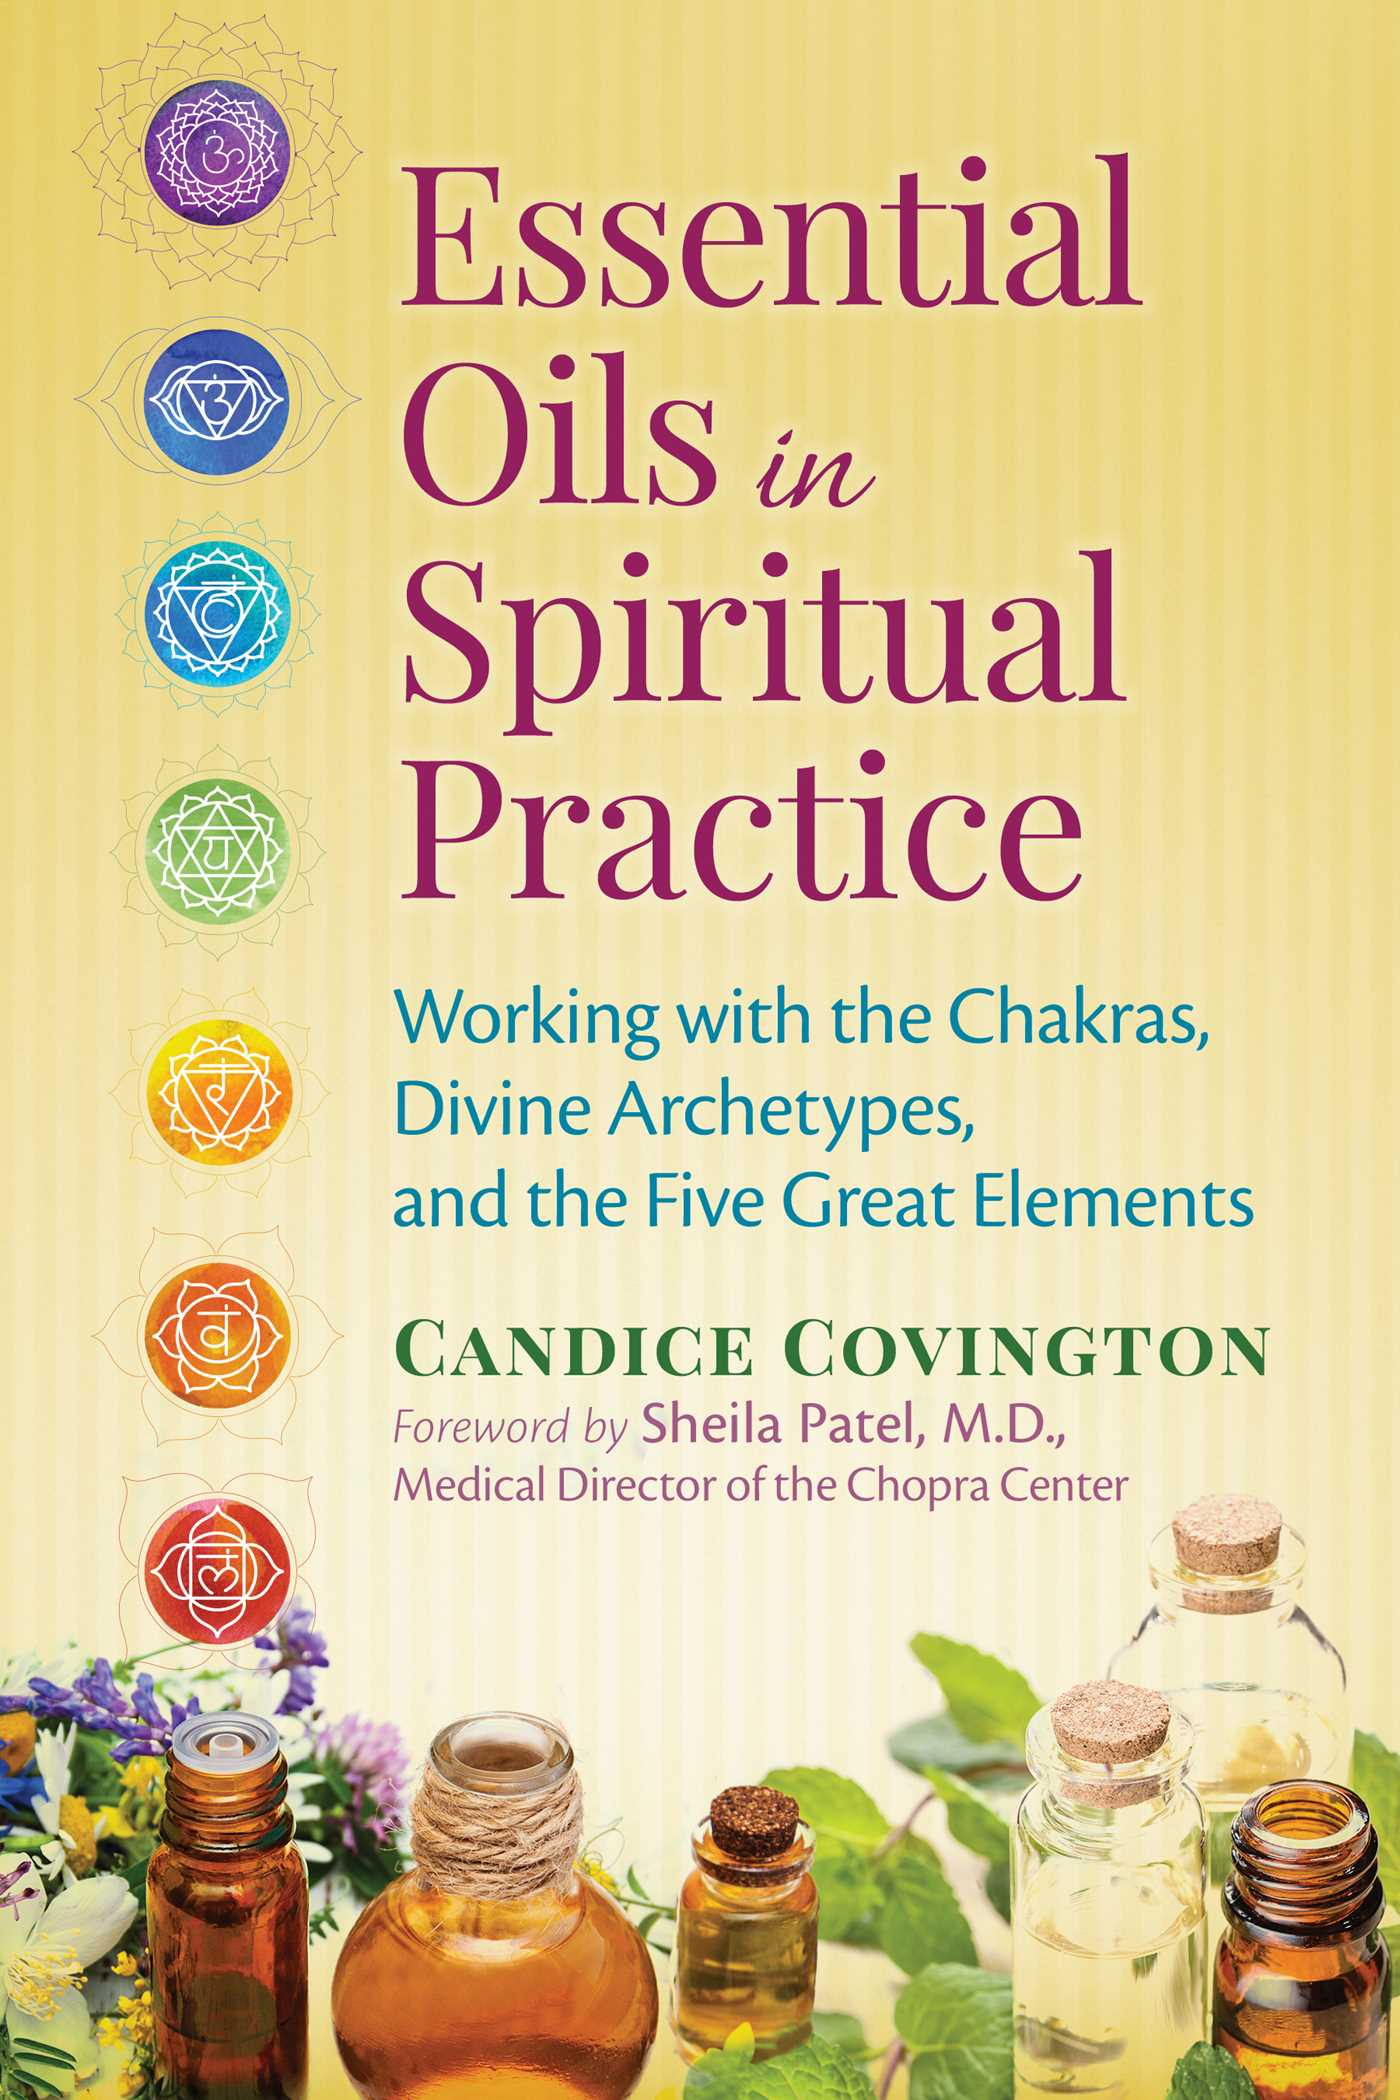 Essential oils in spiritual practice 9781620553053 hr